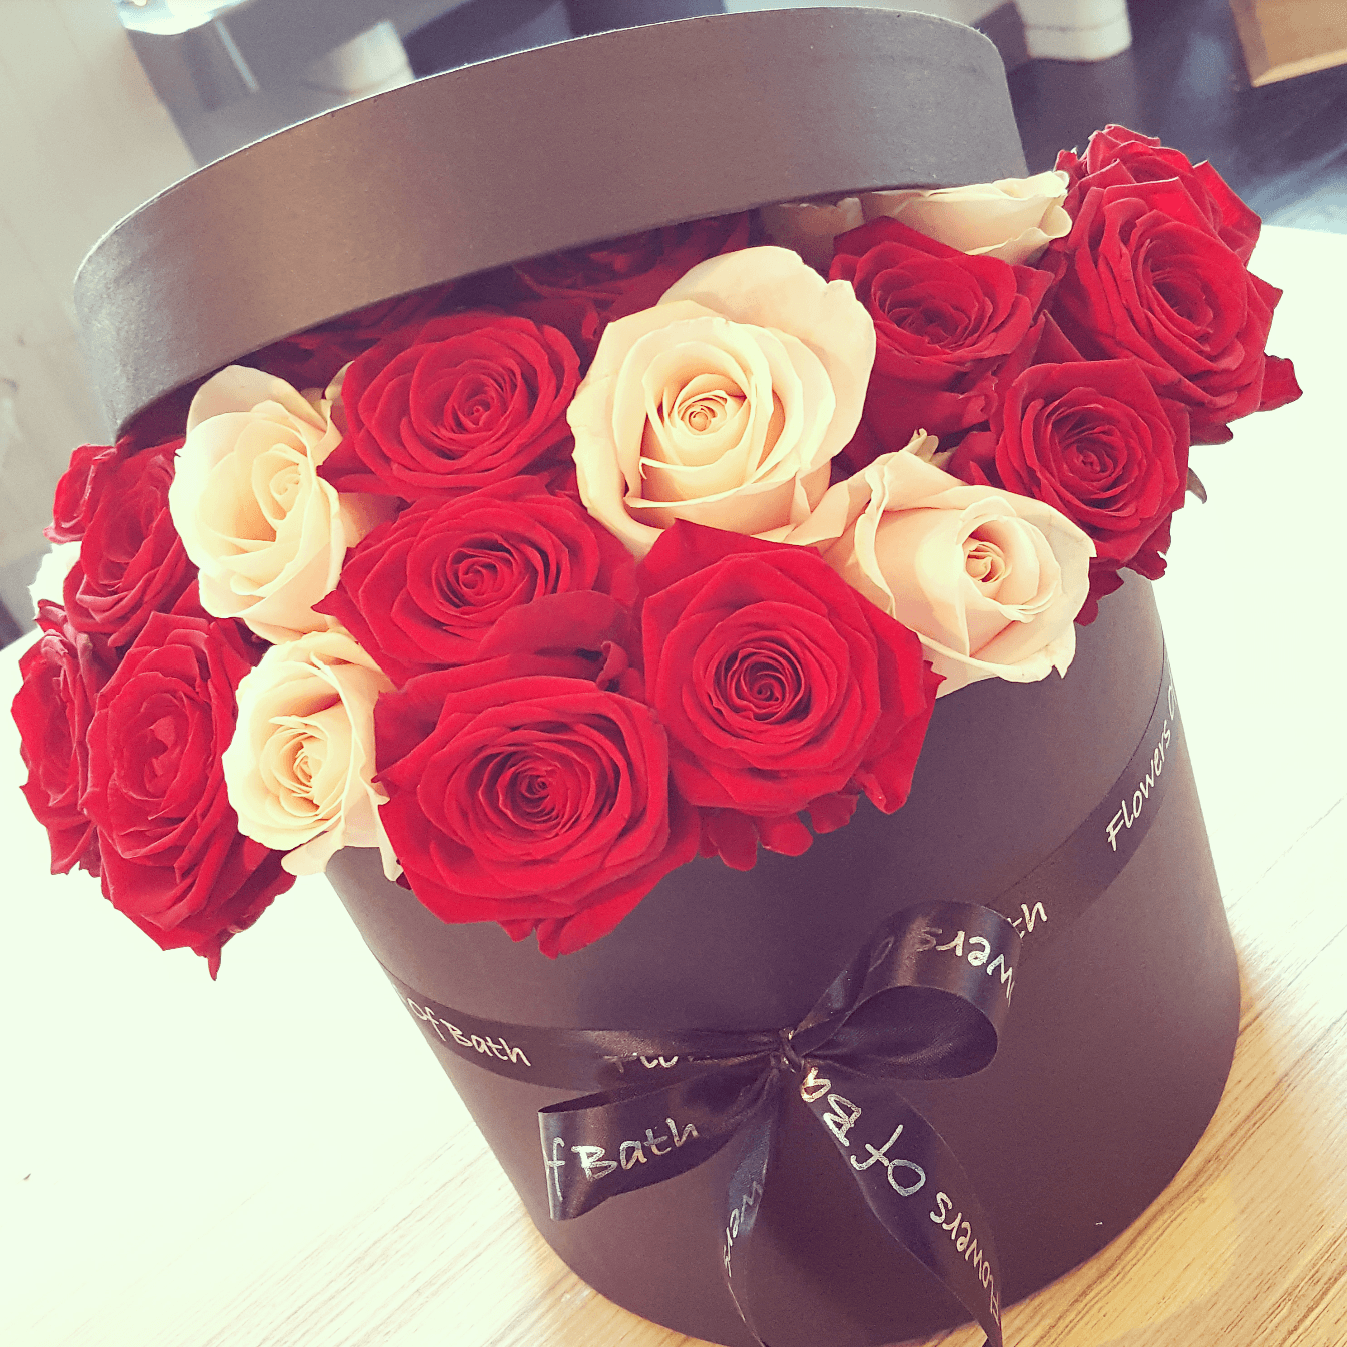 7337f8344b36 Luxury red and pink Rose hatbox - Flowers of Bath